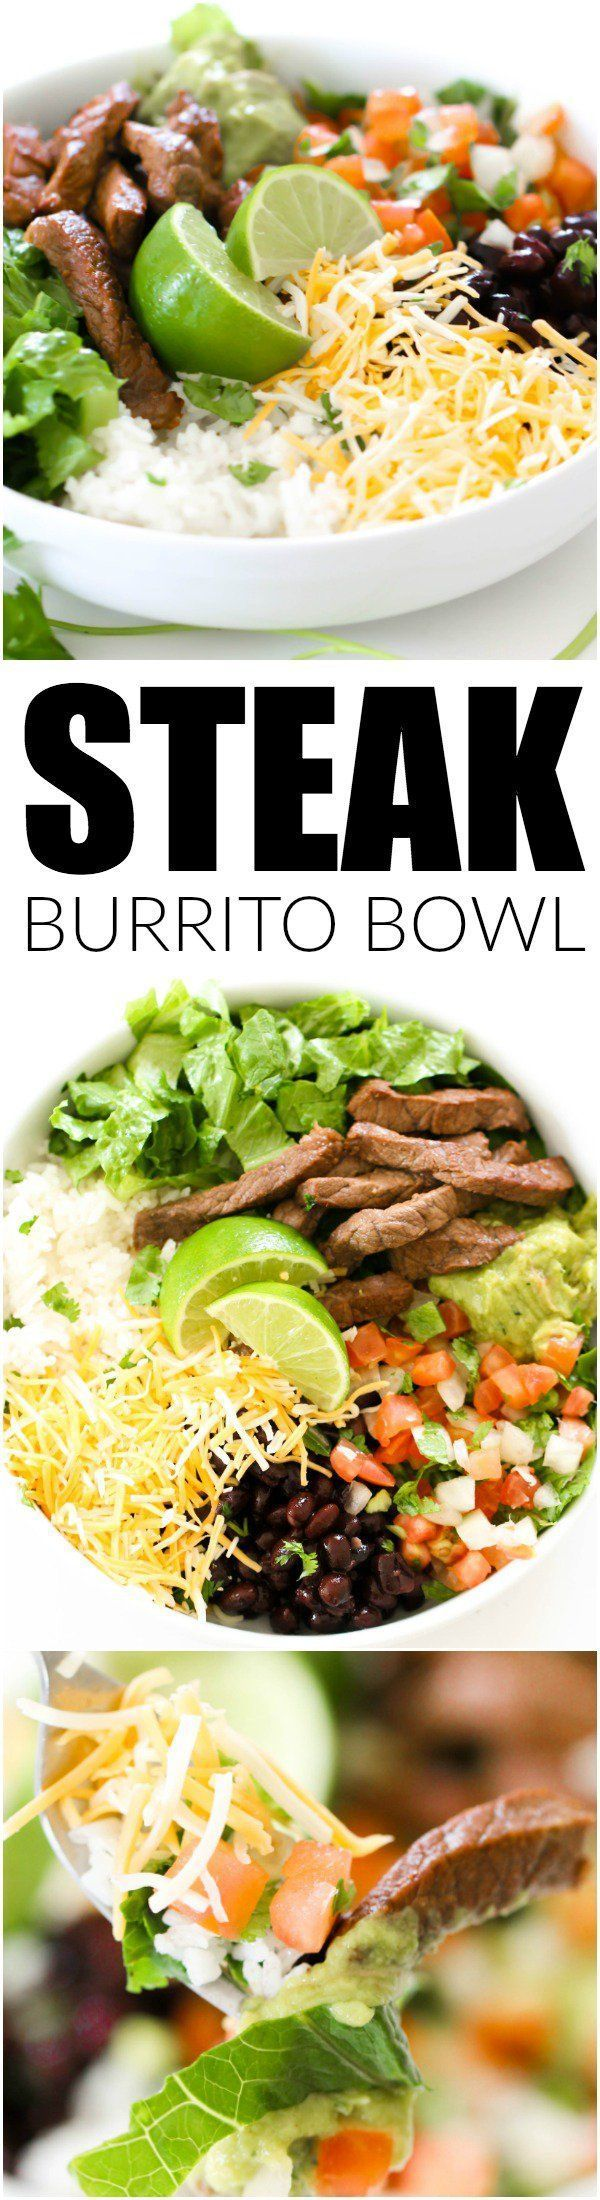 Steak Burrito Bowl from SixSistersStuff.com | Family Meal Ideas | Dinner Recipes | Beef Recipes | Mexican Food Ideas | Healthy Lunch